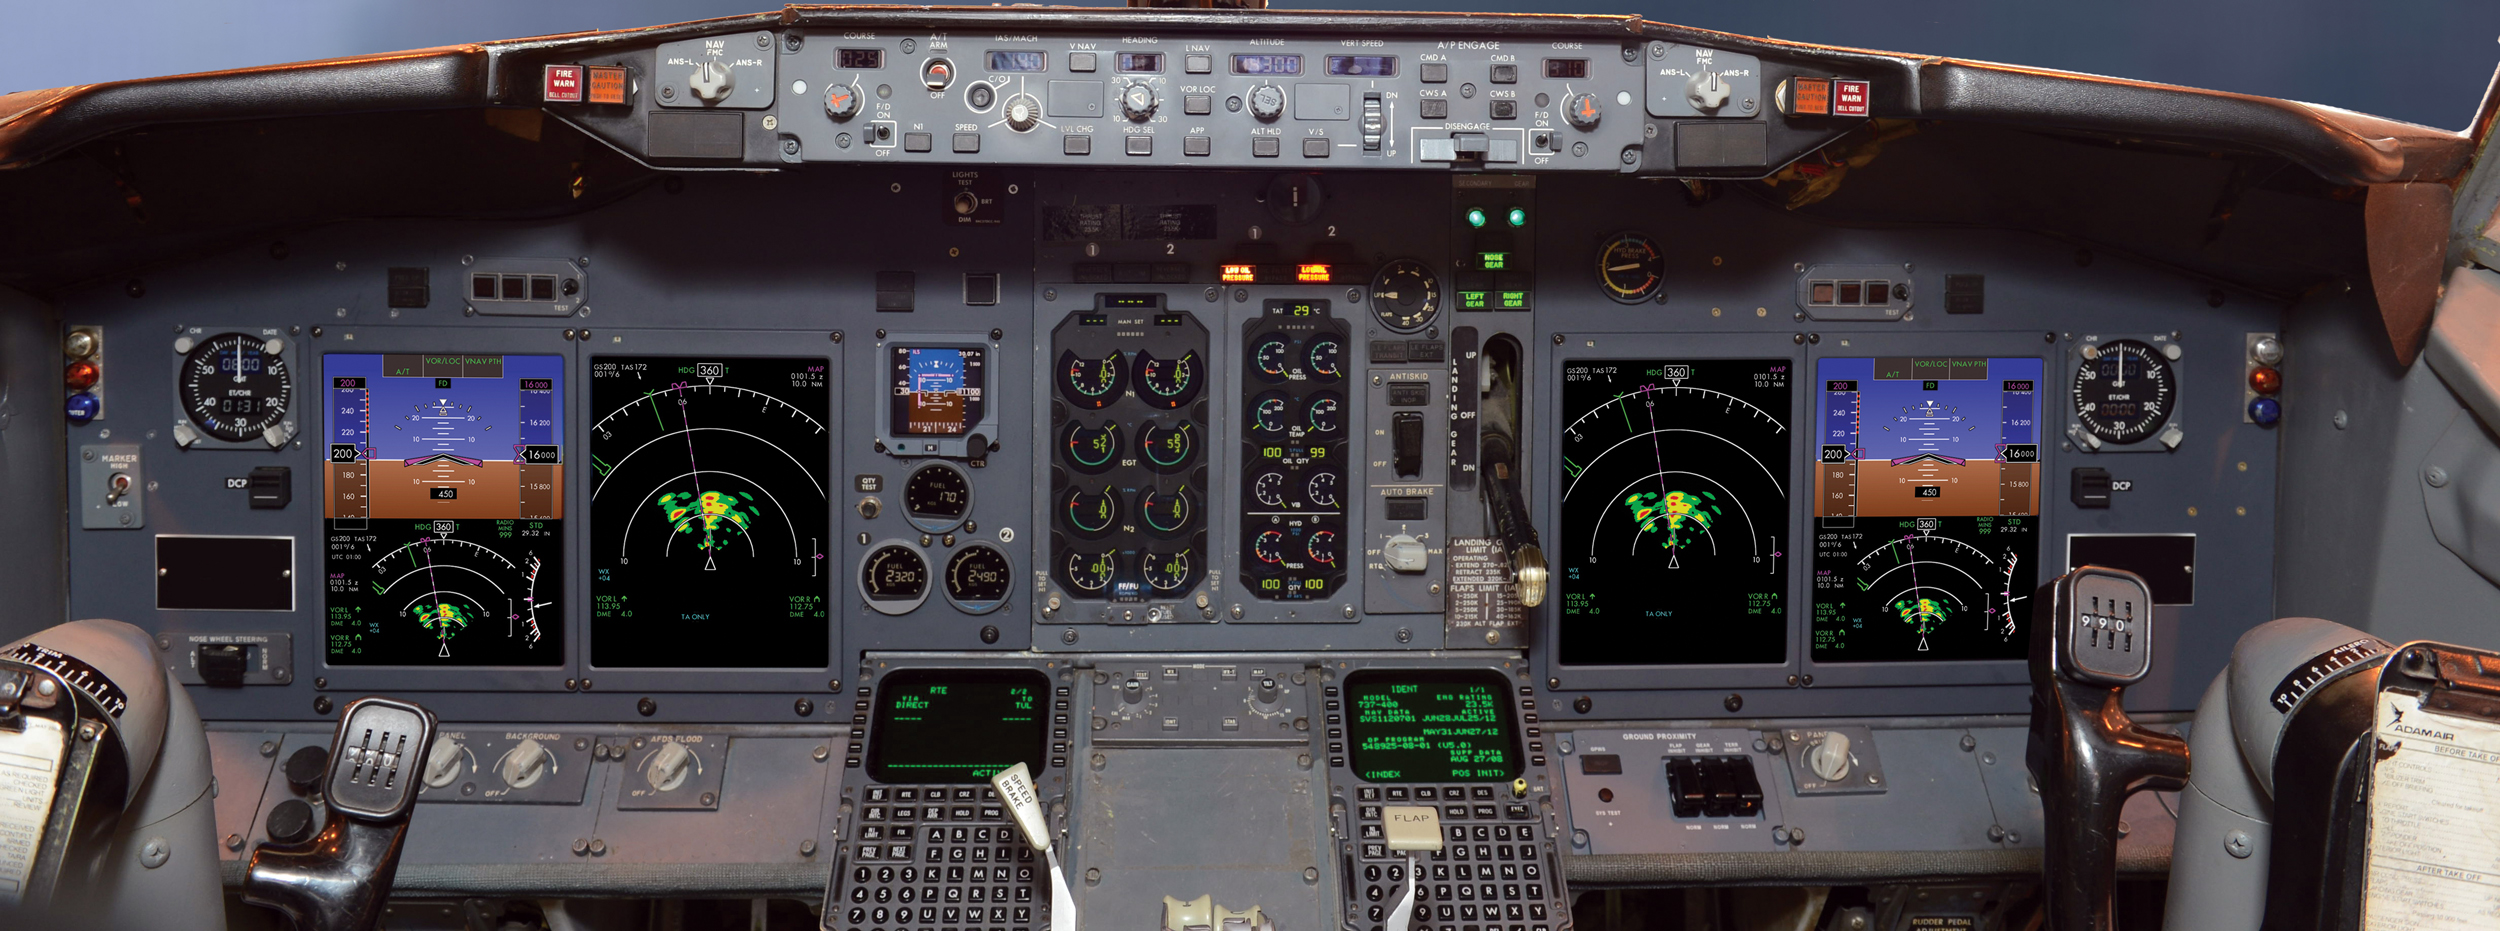 B737 Flight Deck Upgrade Innovative Solutions Amp Support